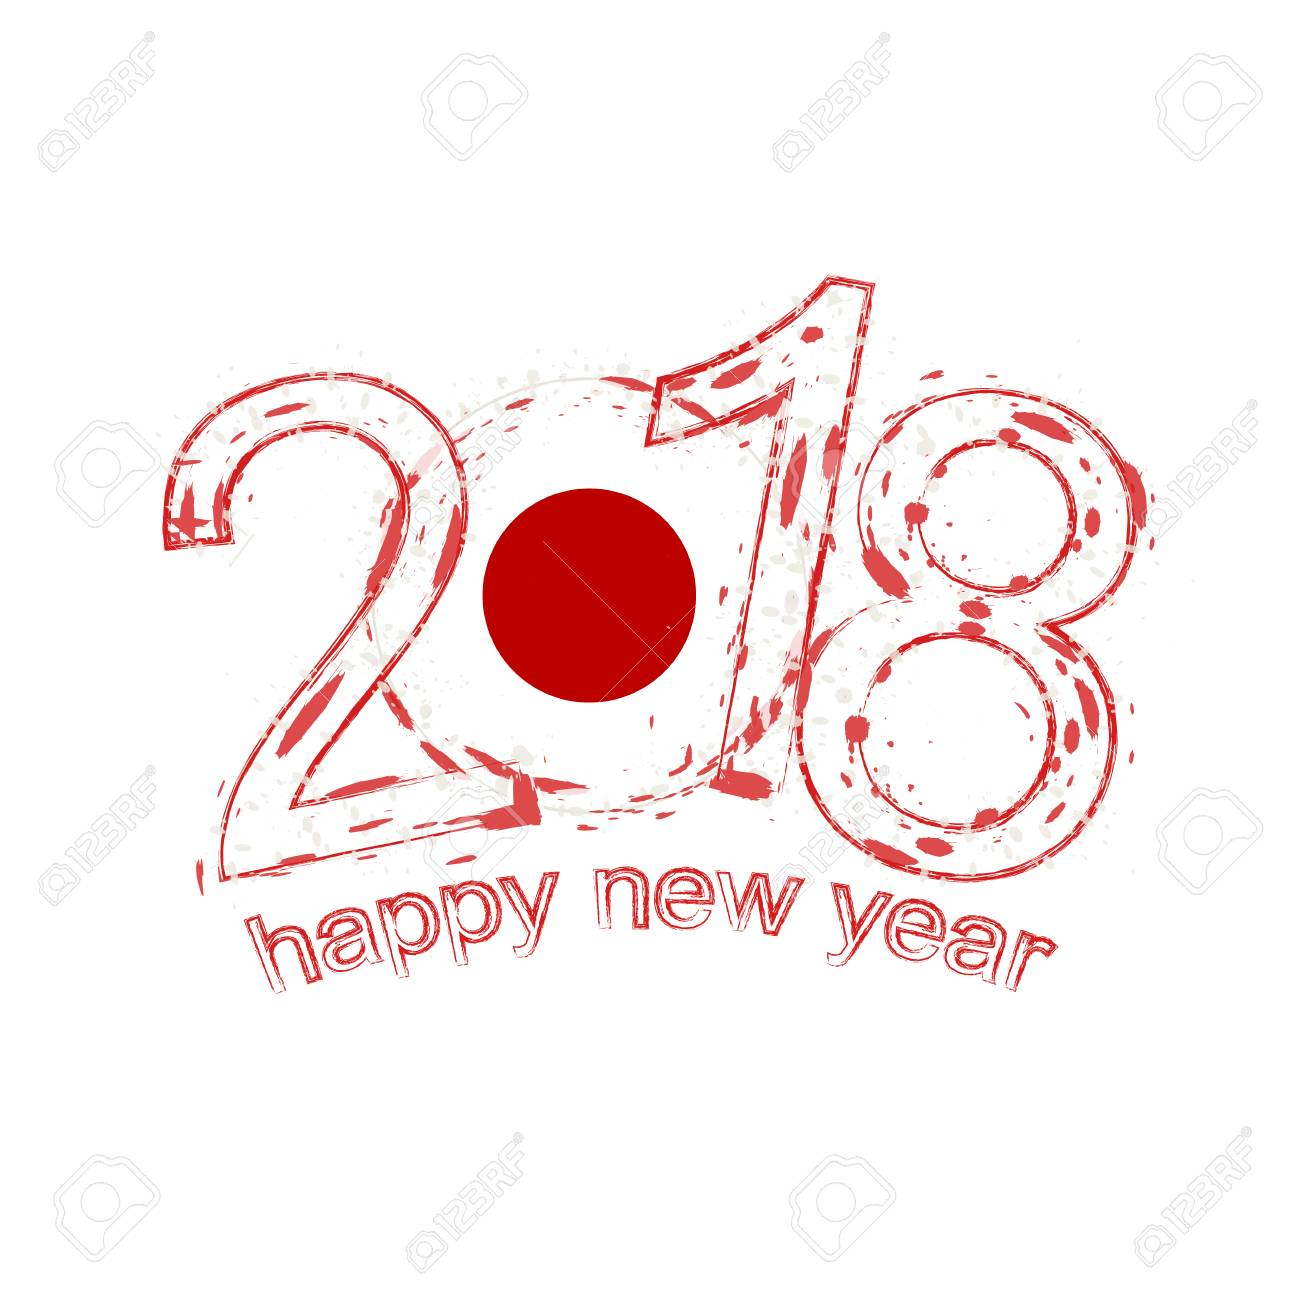 2018 happy new year japan grunge vector template for greeting